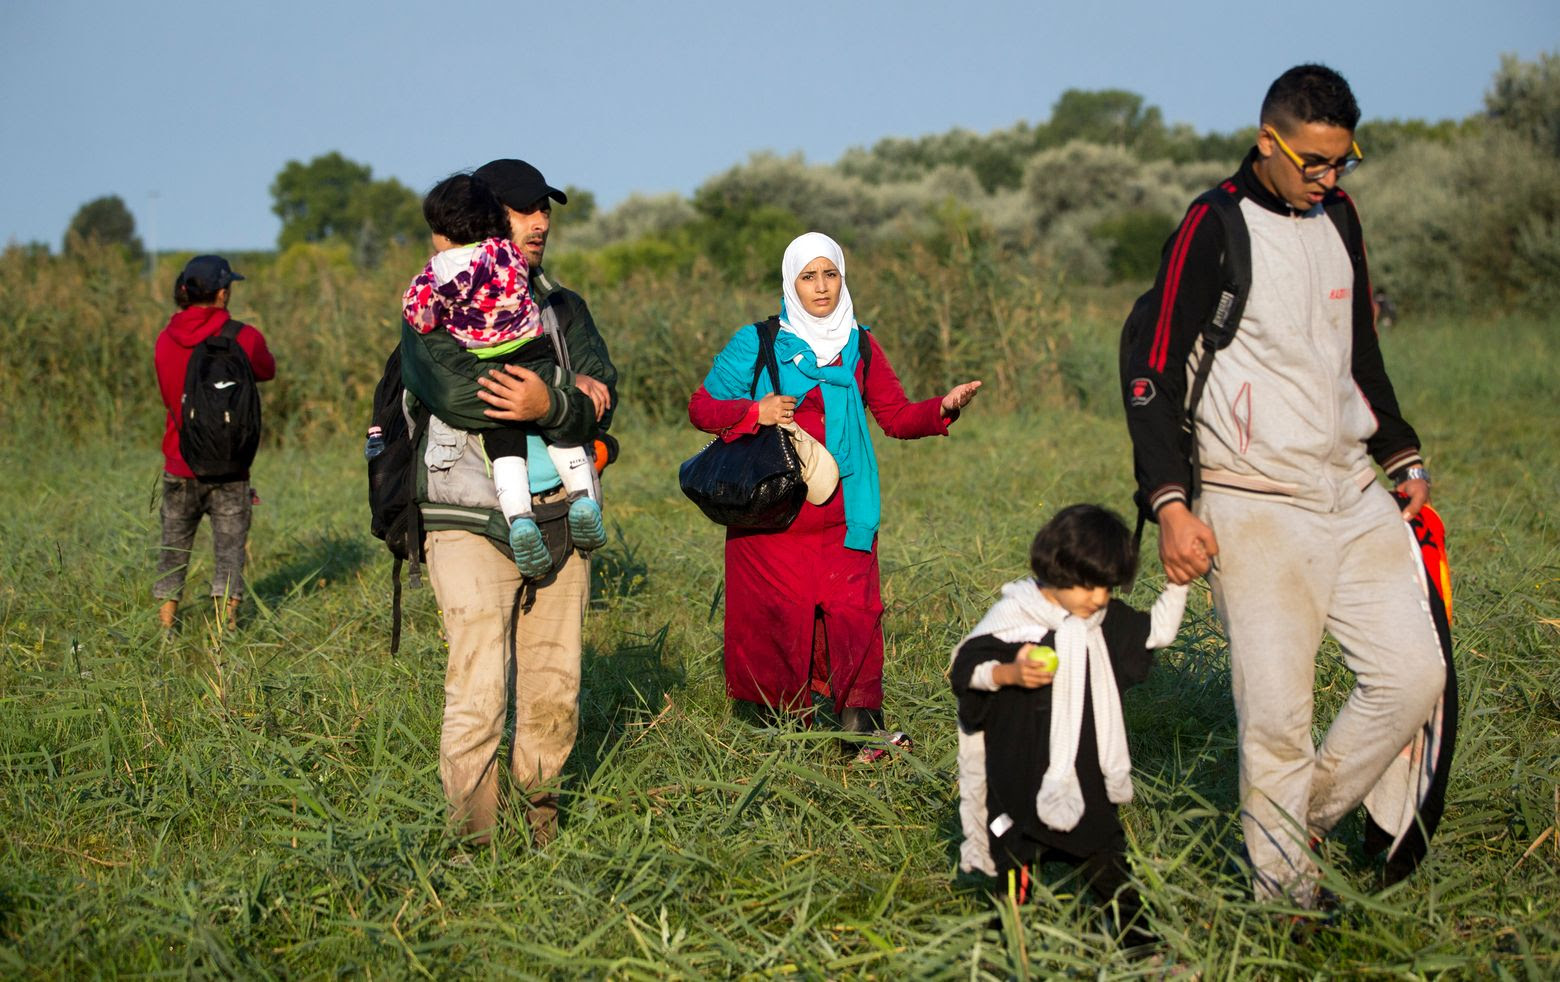 Refugees walk through a field after crossing from Serbia to Hungary, in Roszke, Thursday, Aug. (AP Photo/Darko Bandic)